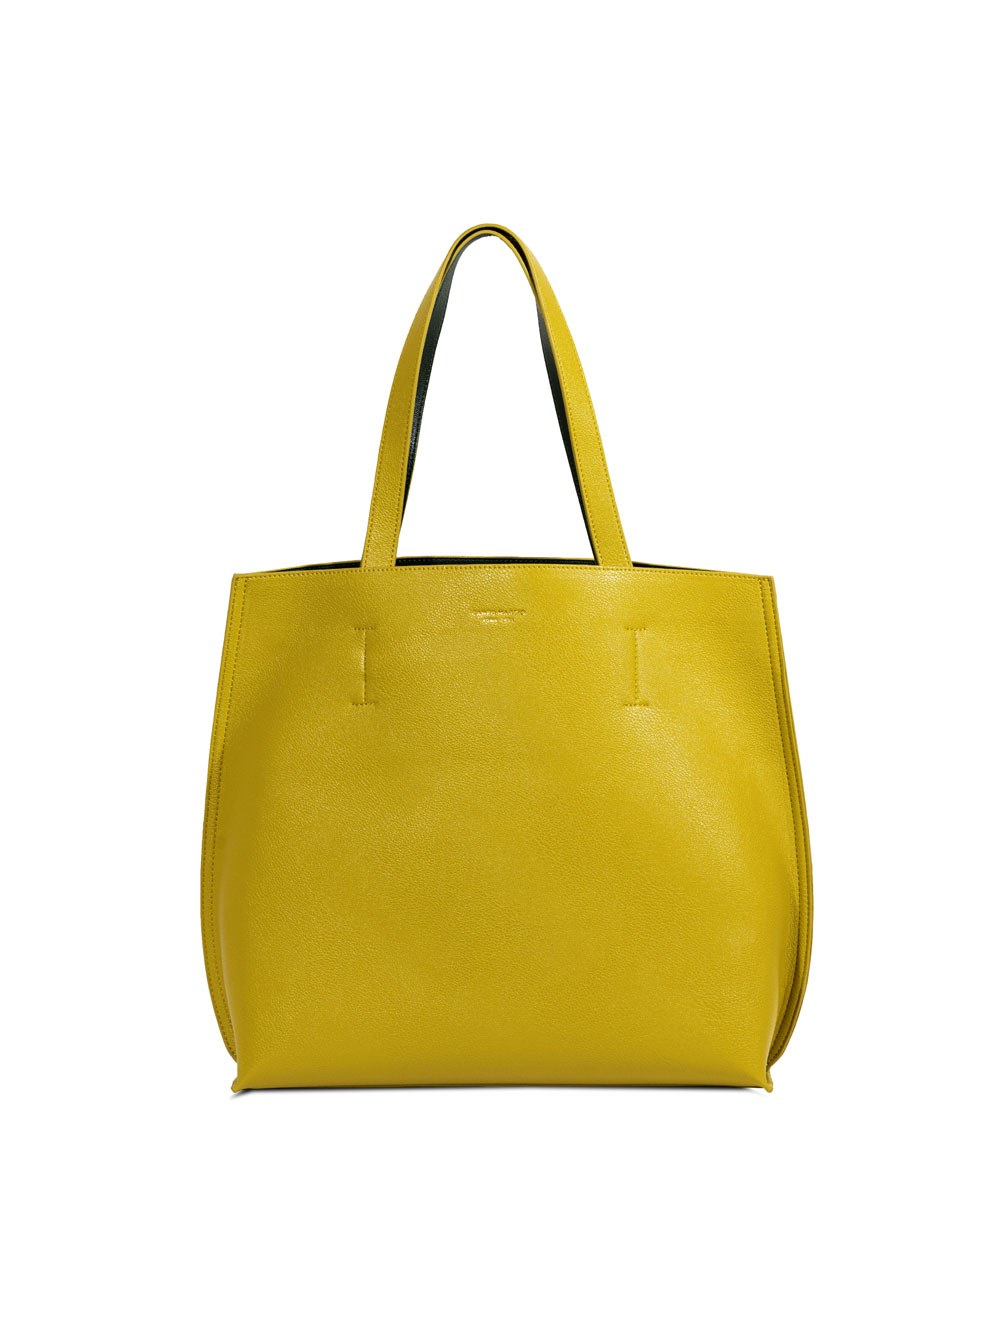 Double Tote Bag - Chartreuse